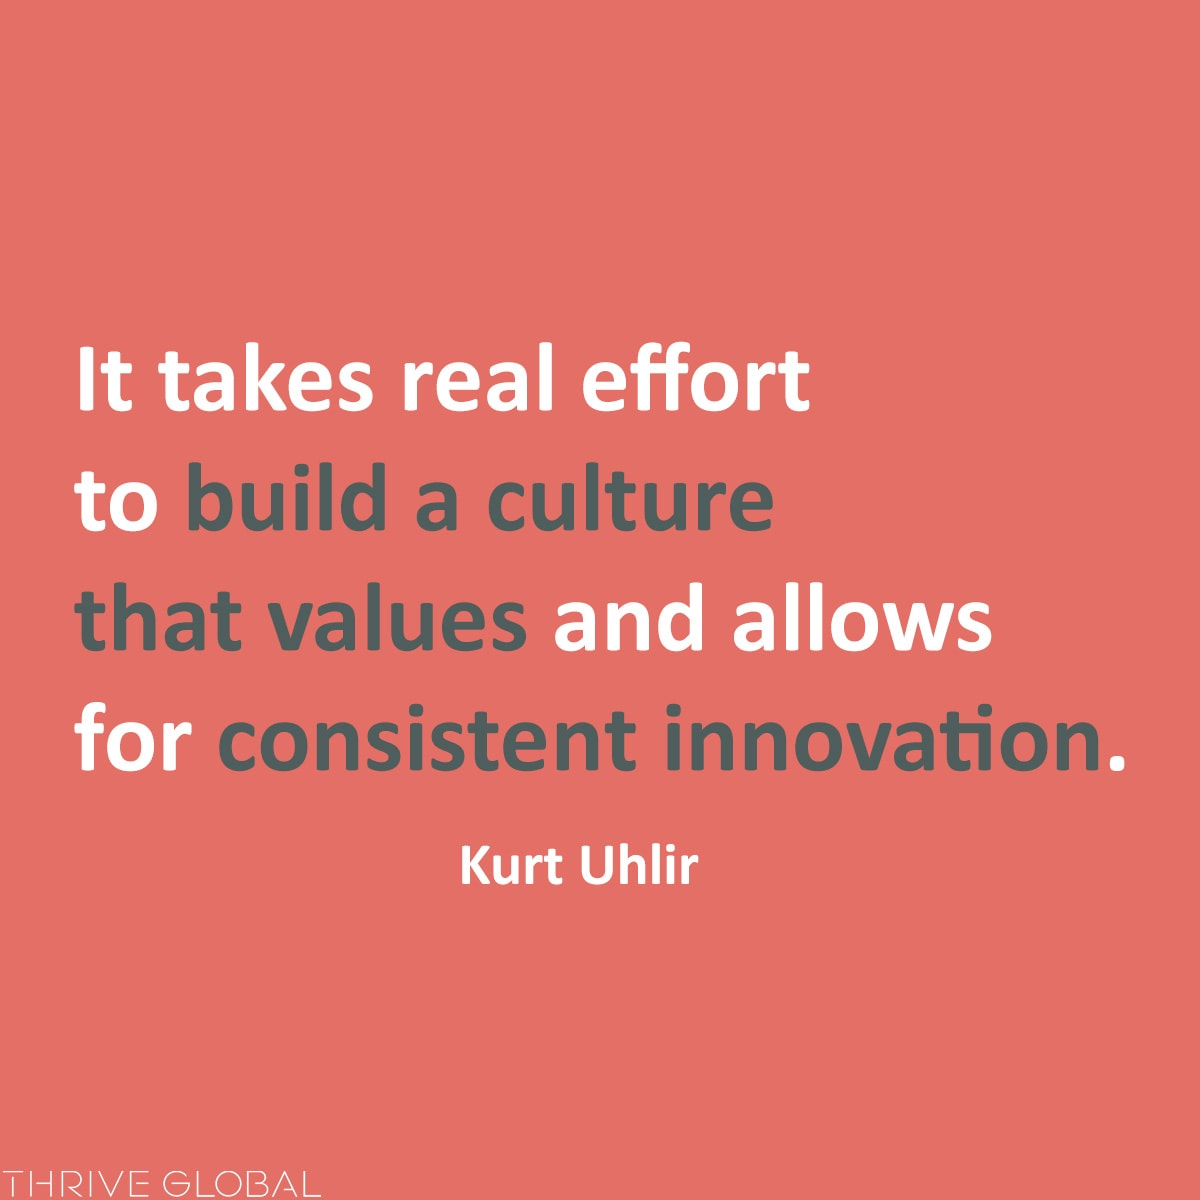 It takes real effort to build a culture that values and allows for consistent innovation.